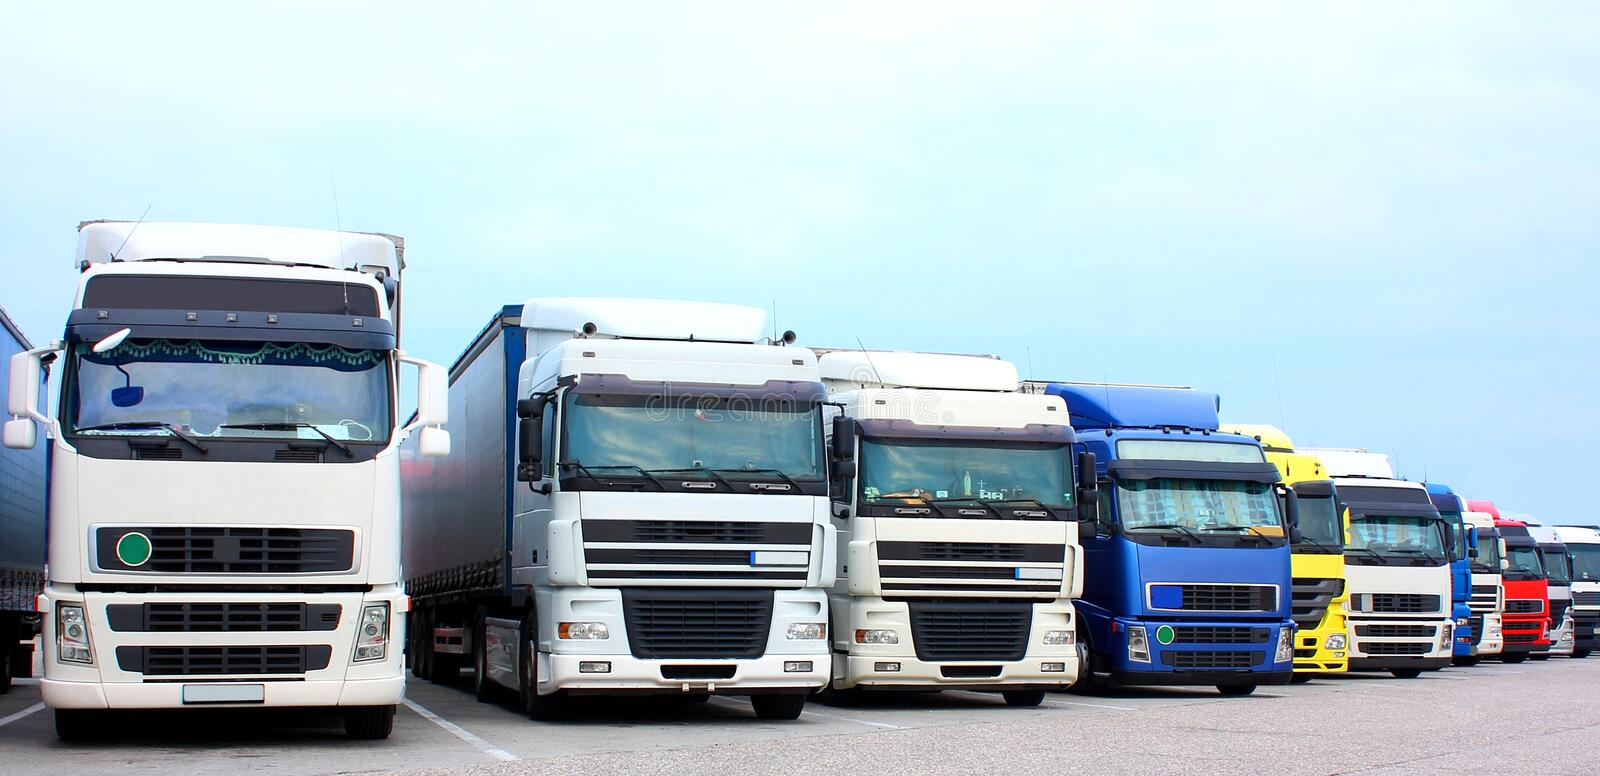 Trucks on a highway parking place royalty free stock images